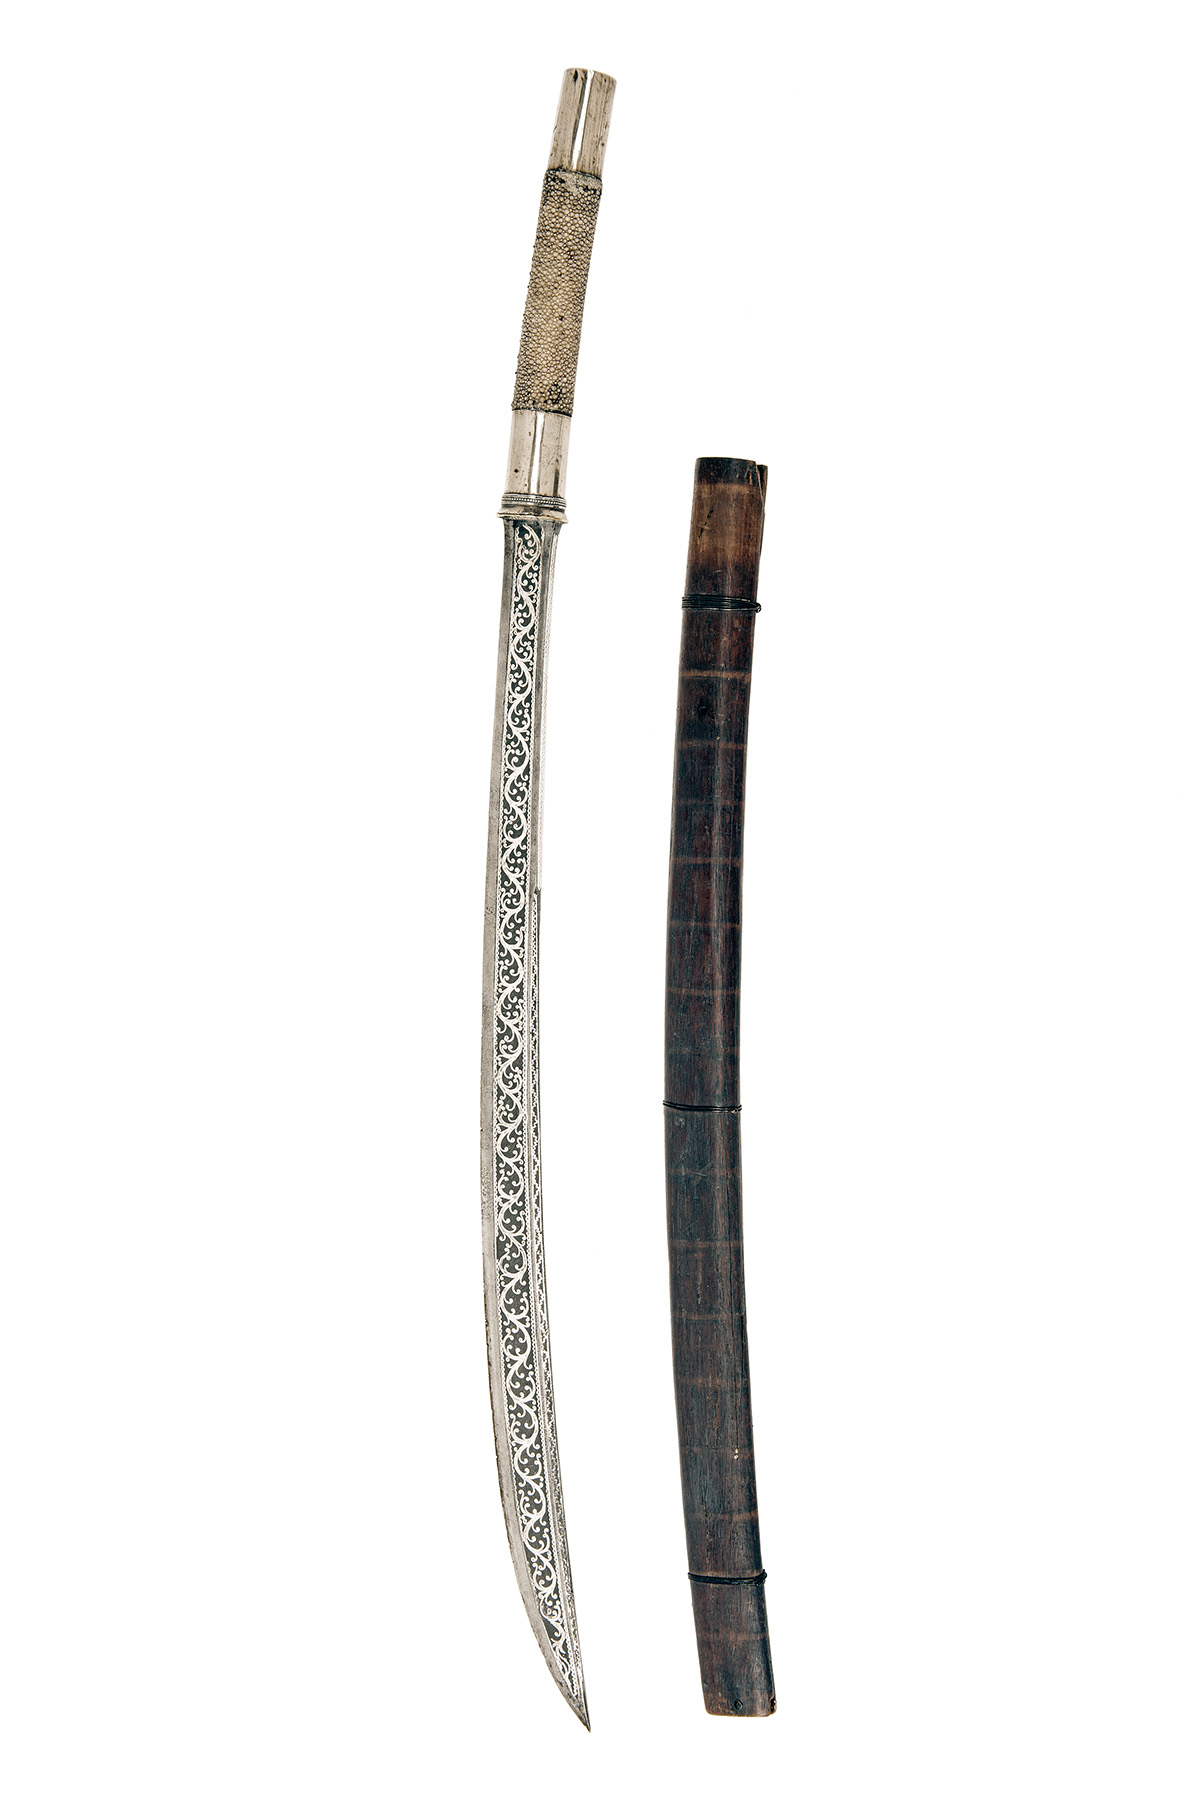 Lot 212 - A WHITE-METAL AND KOFTGARI DECORATED BURMESE DHA, late 19th century, with curving spear-point